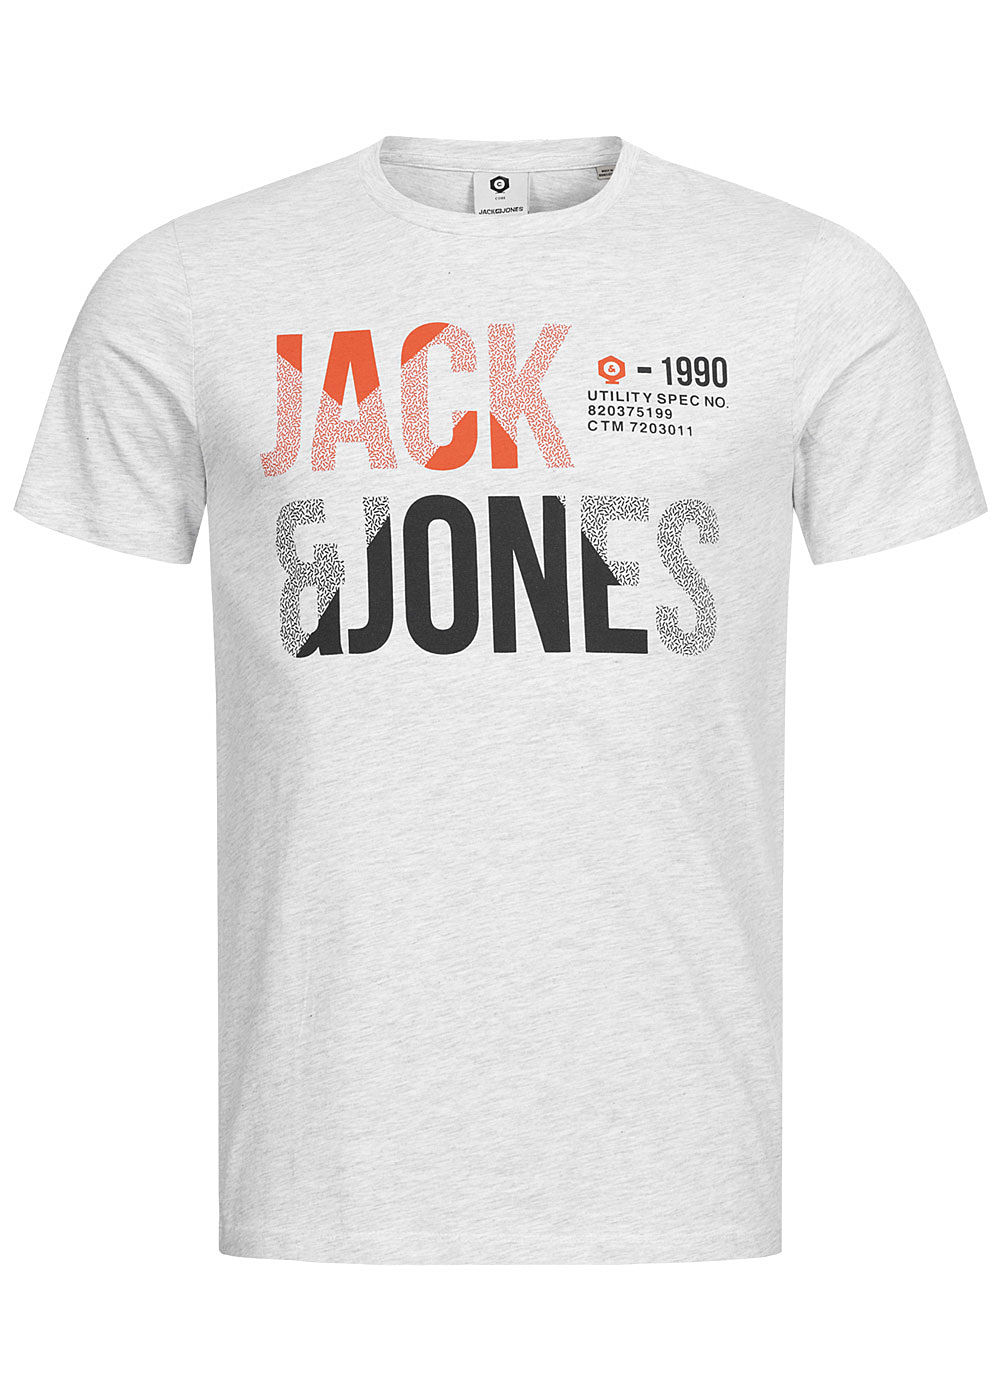 Jack and Jones Herren T-Shirt Logo Print Slim Fit weiss grau melange - Art.-Nr.: 20041593